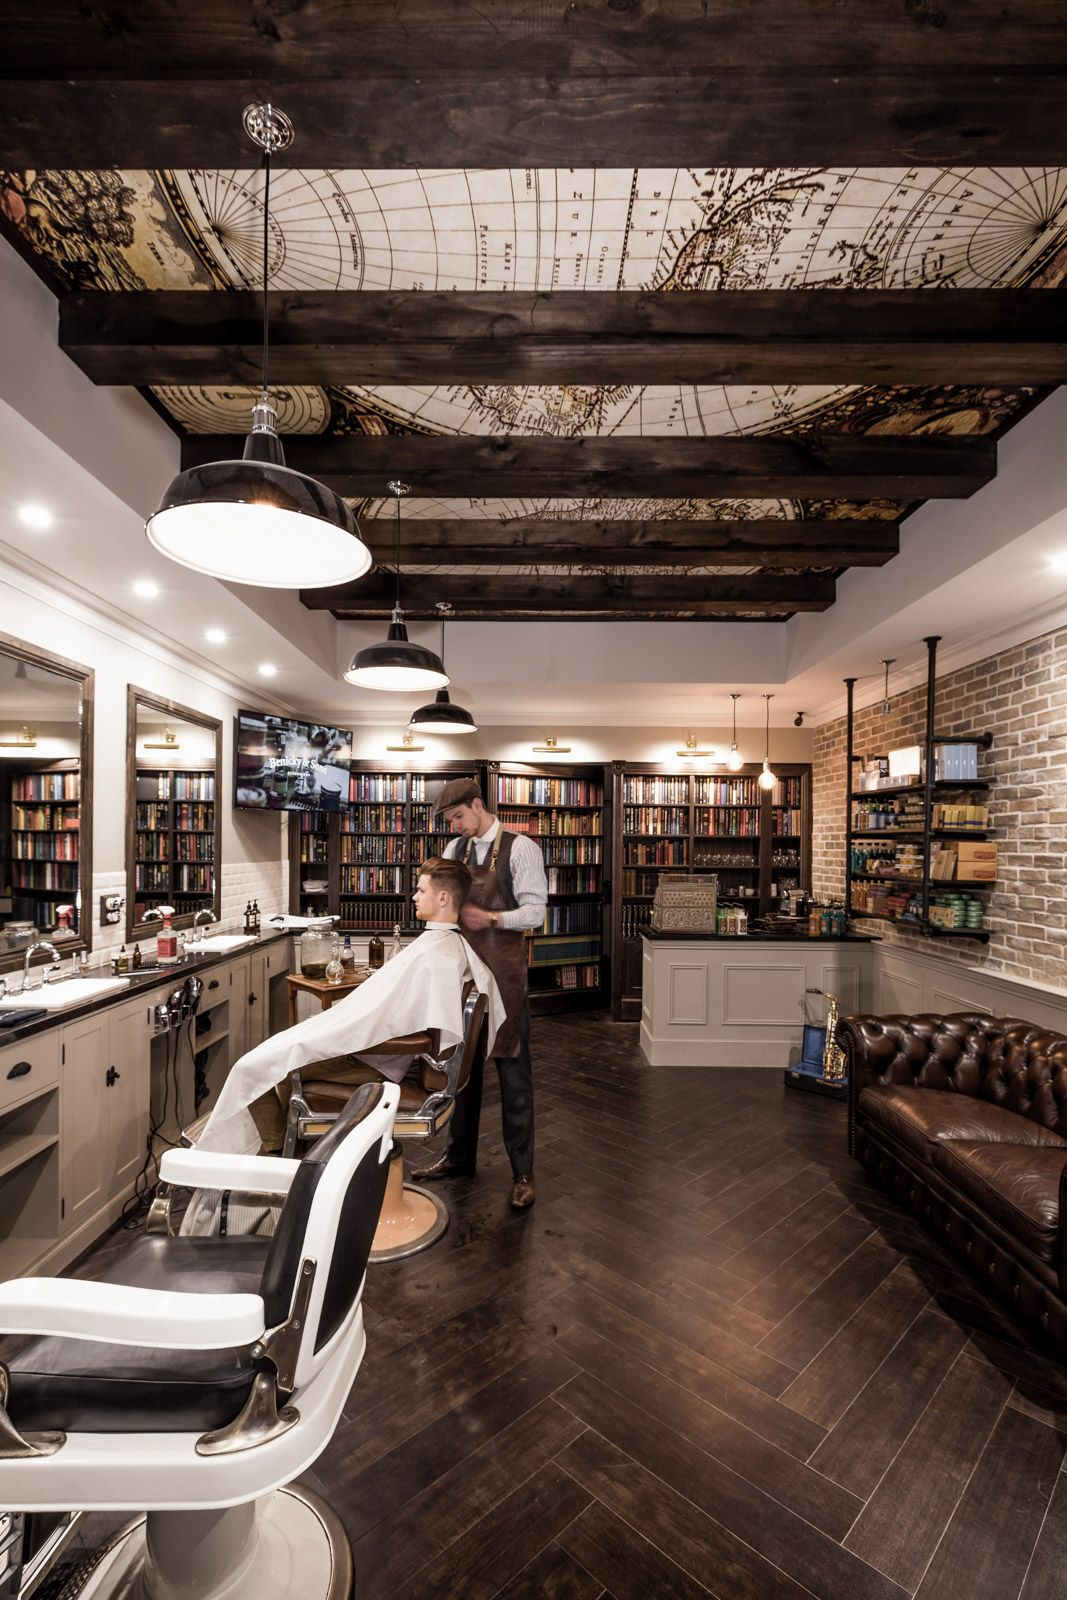 Top 80 Best Barber Shop Design Ideas – Manly Interior Decor pictures